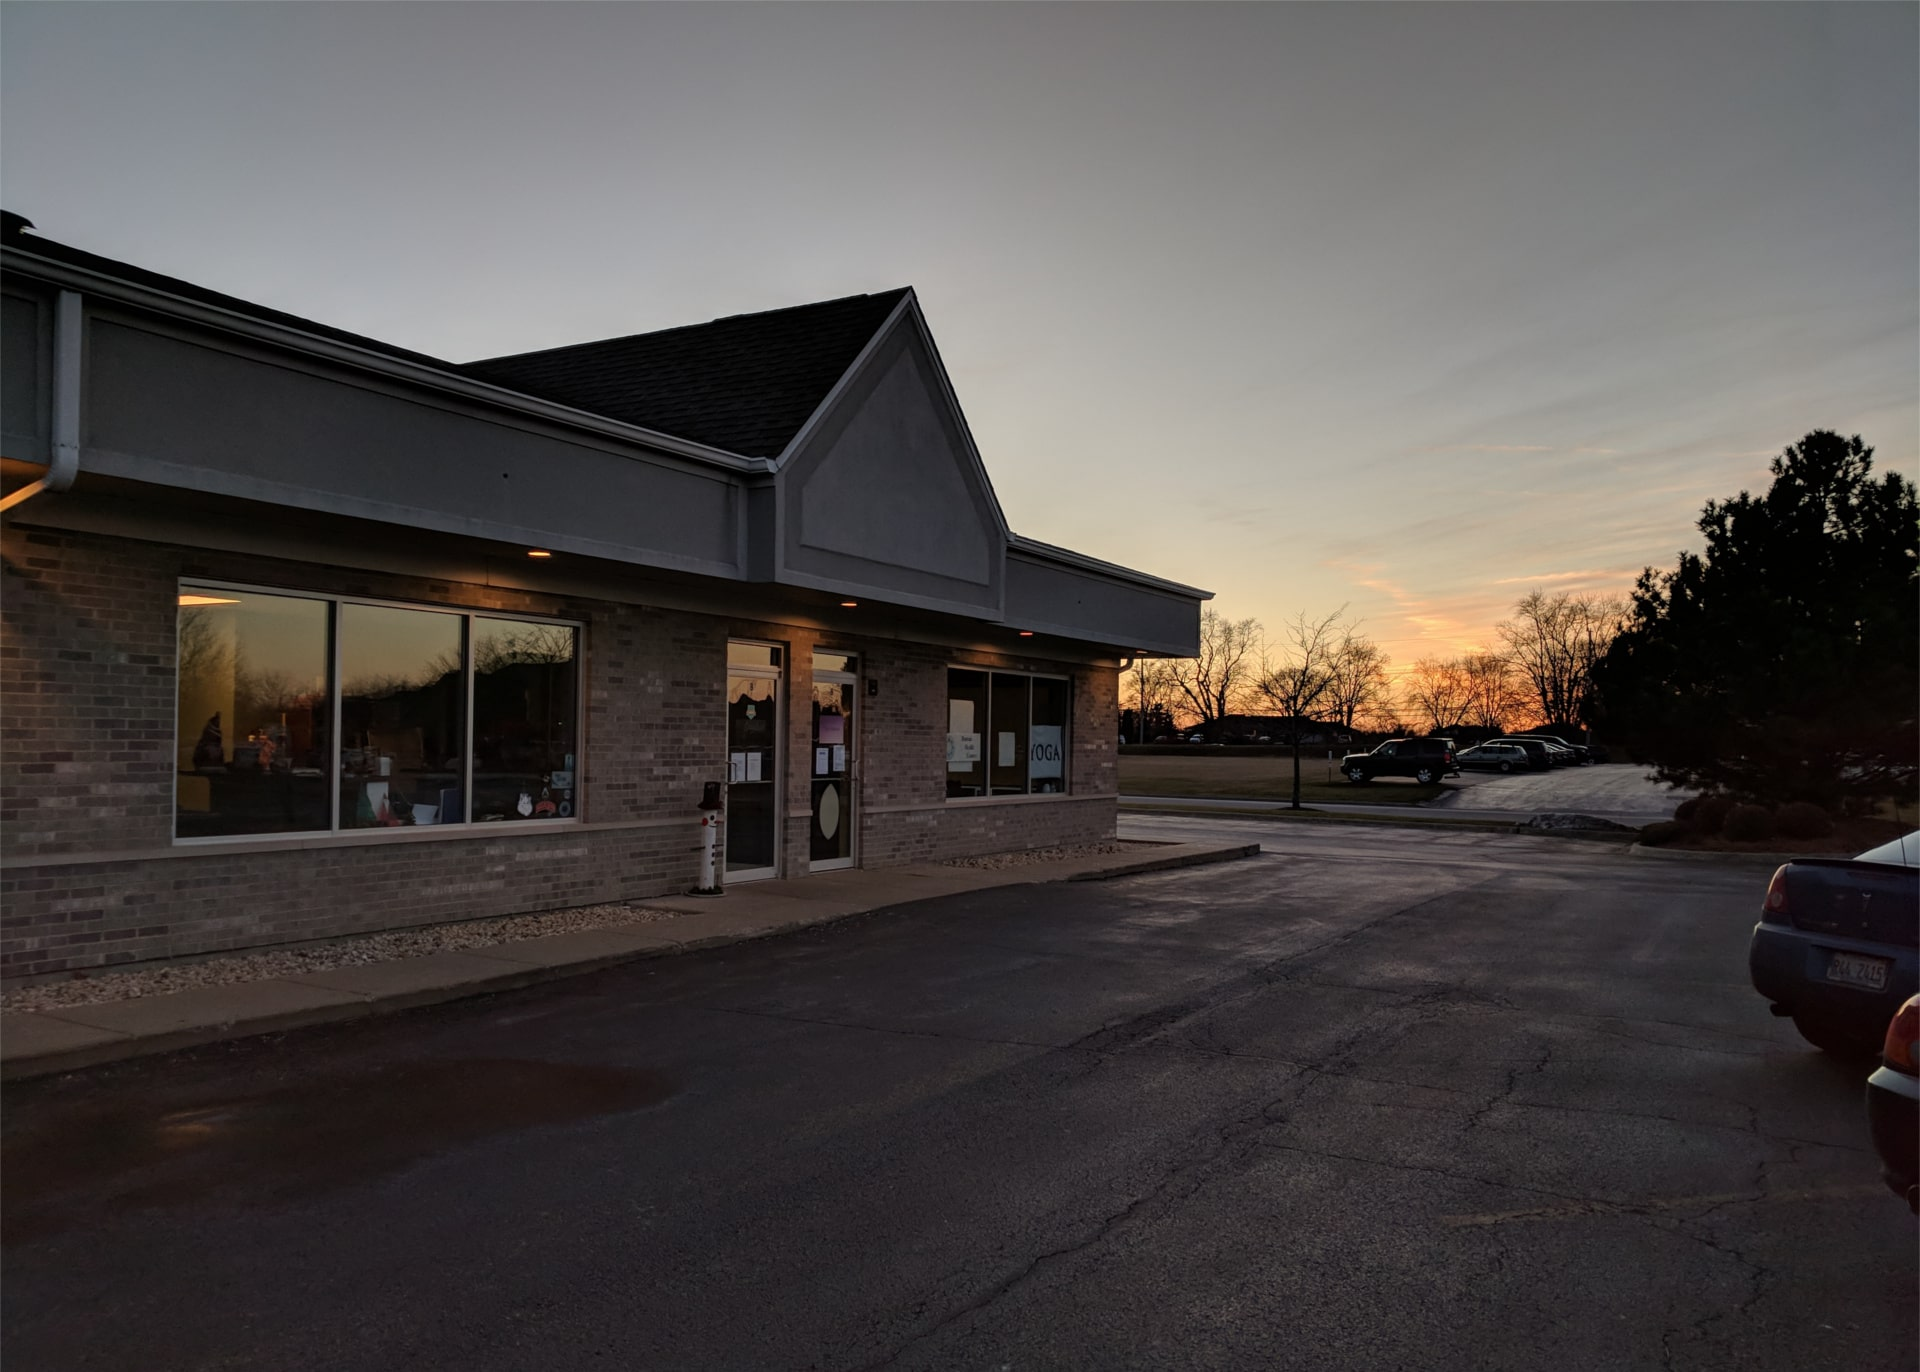 Yoga Balance - Grayslake Building at Sunset